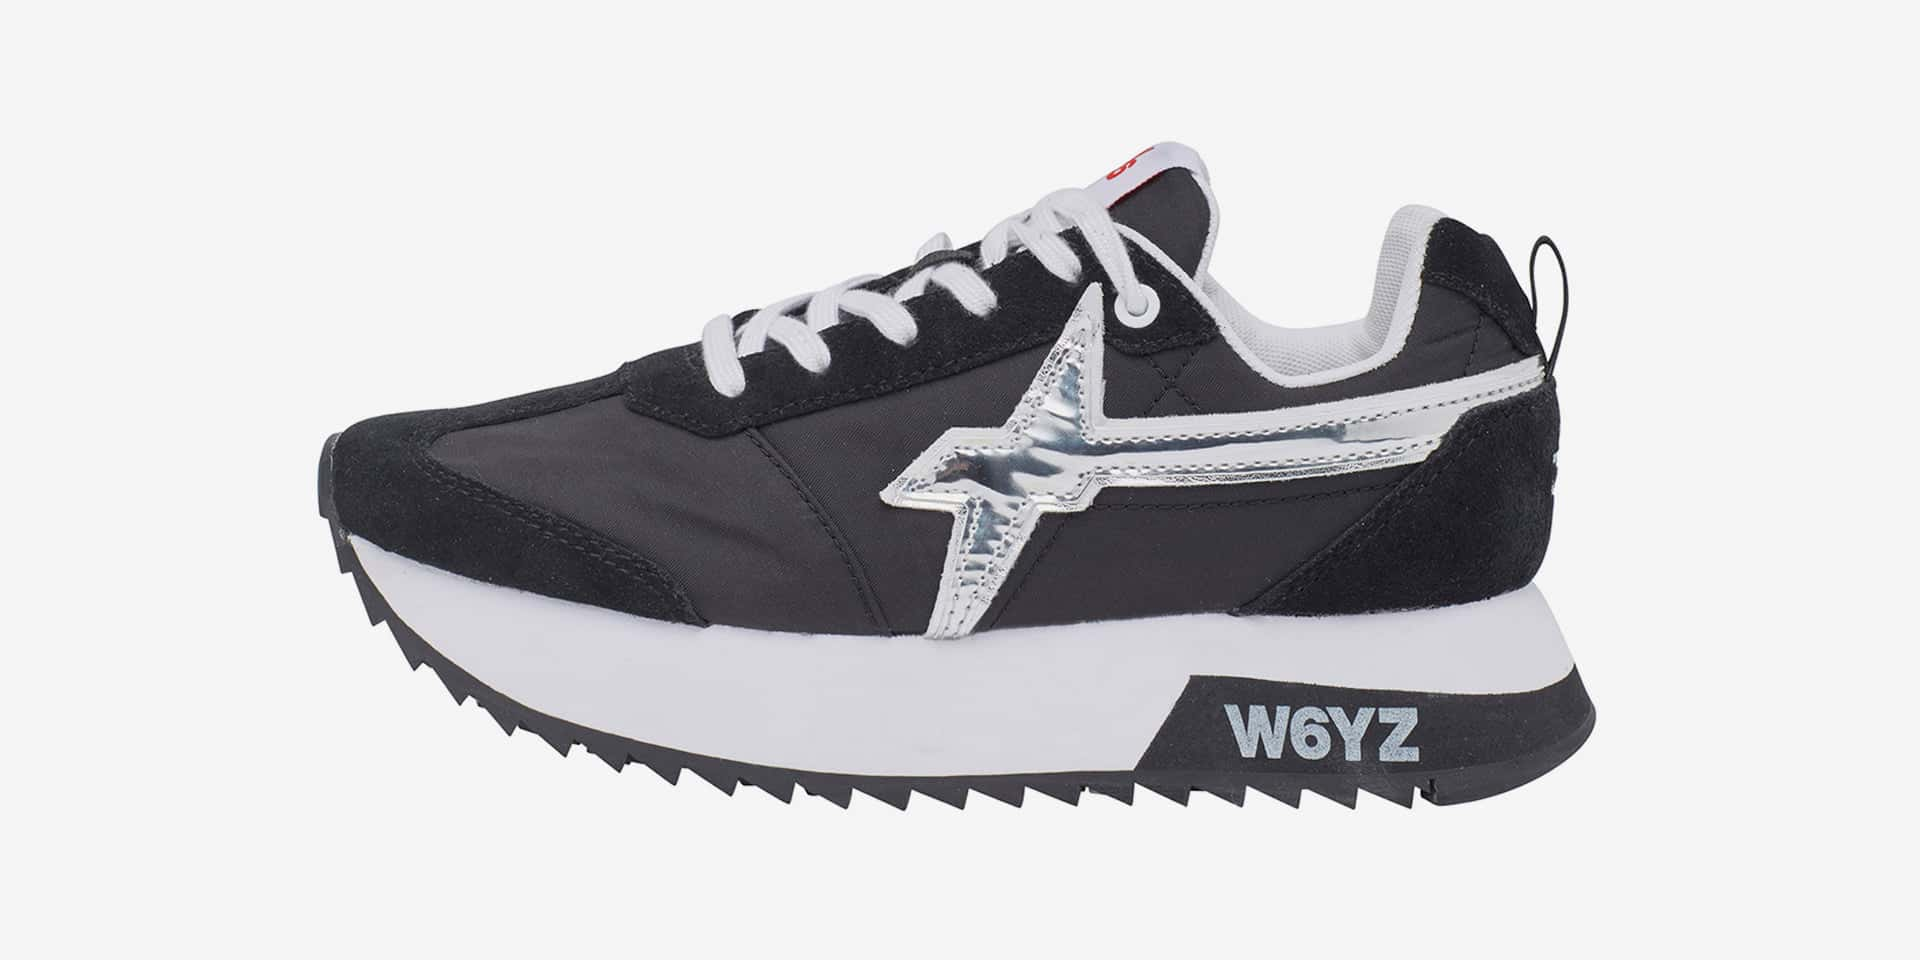 KIS-W. - Leather and nylon sneakers - Black/Silver